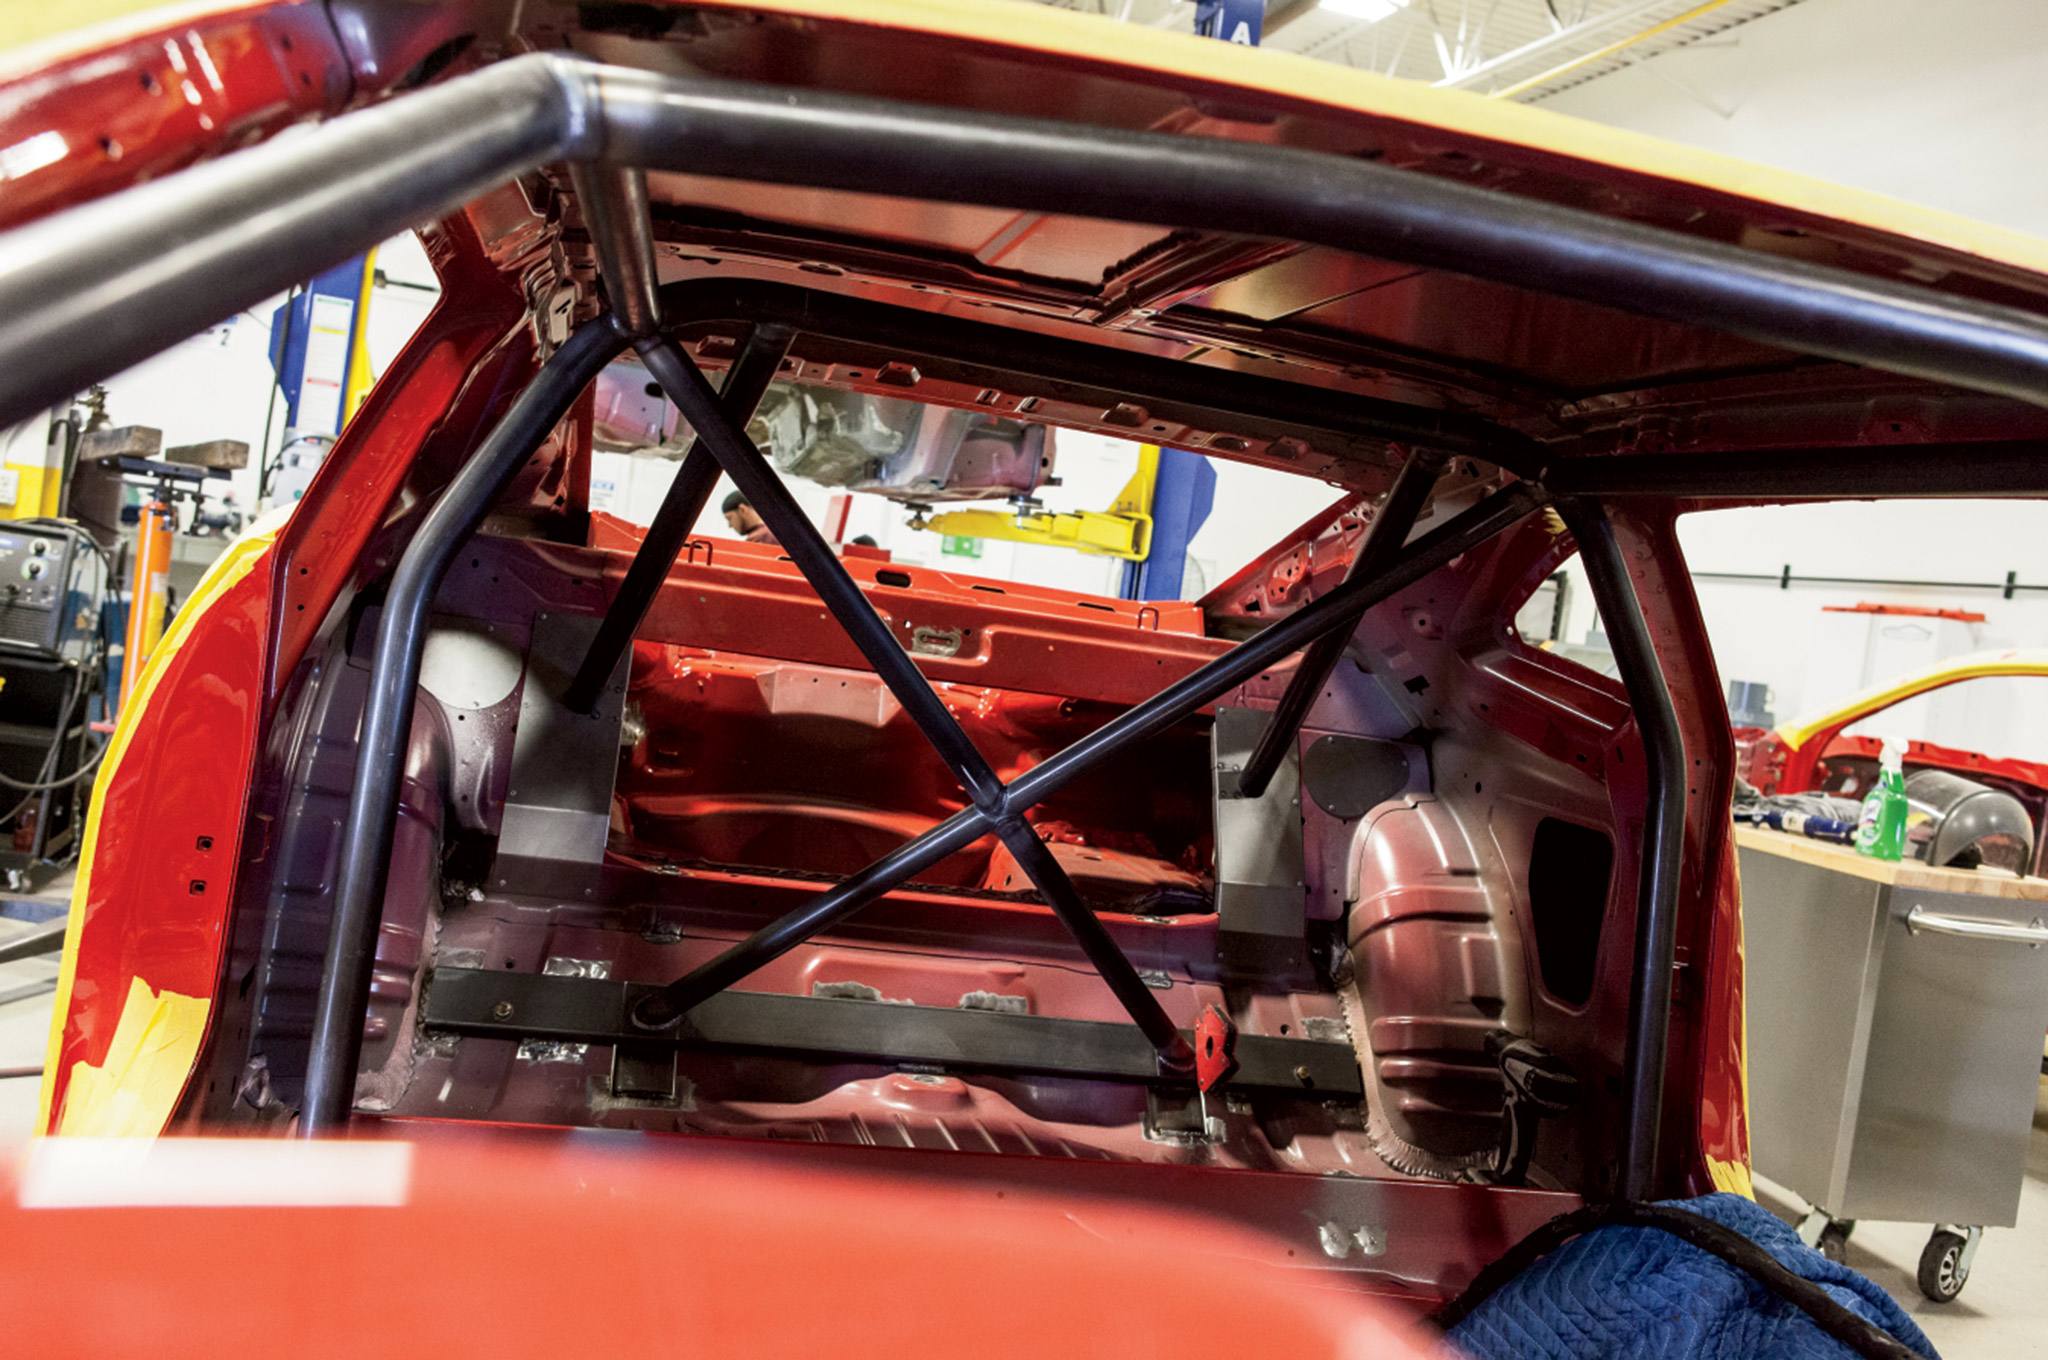 Here you can see the rear main hoop, front hoop, rear X, and rear down bars in place. Every weld is done by hand at the factory and inspected by both the COPO team and the NHRA prior to delivery. Note the laser cut rear down bar covers. A nice touch to cover the factory rear seat area.